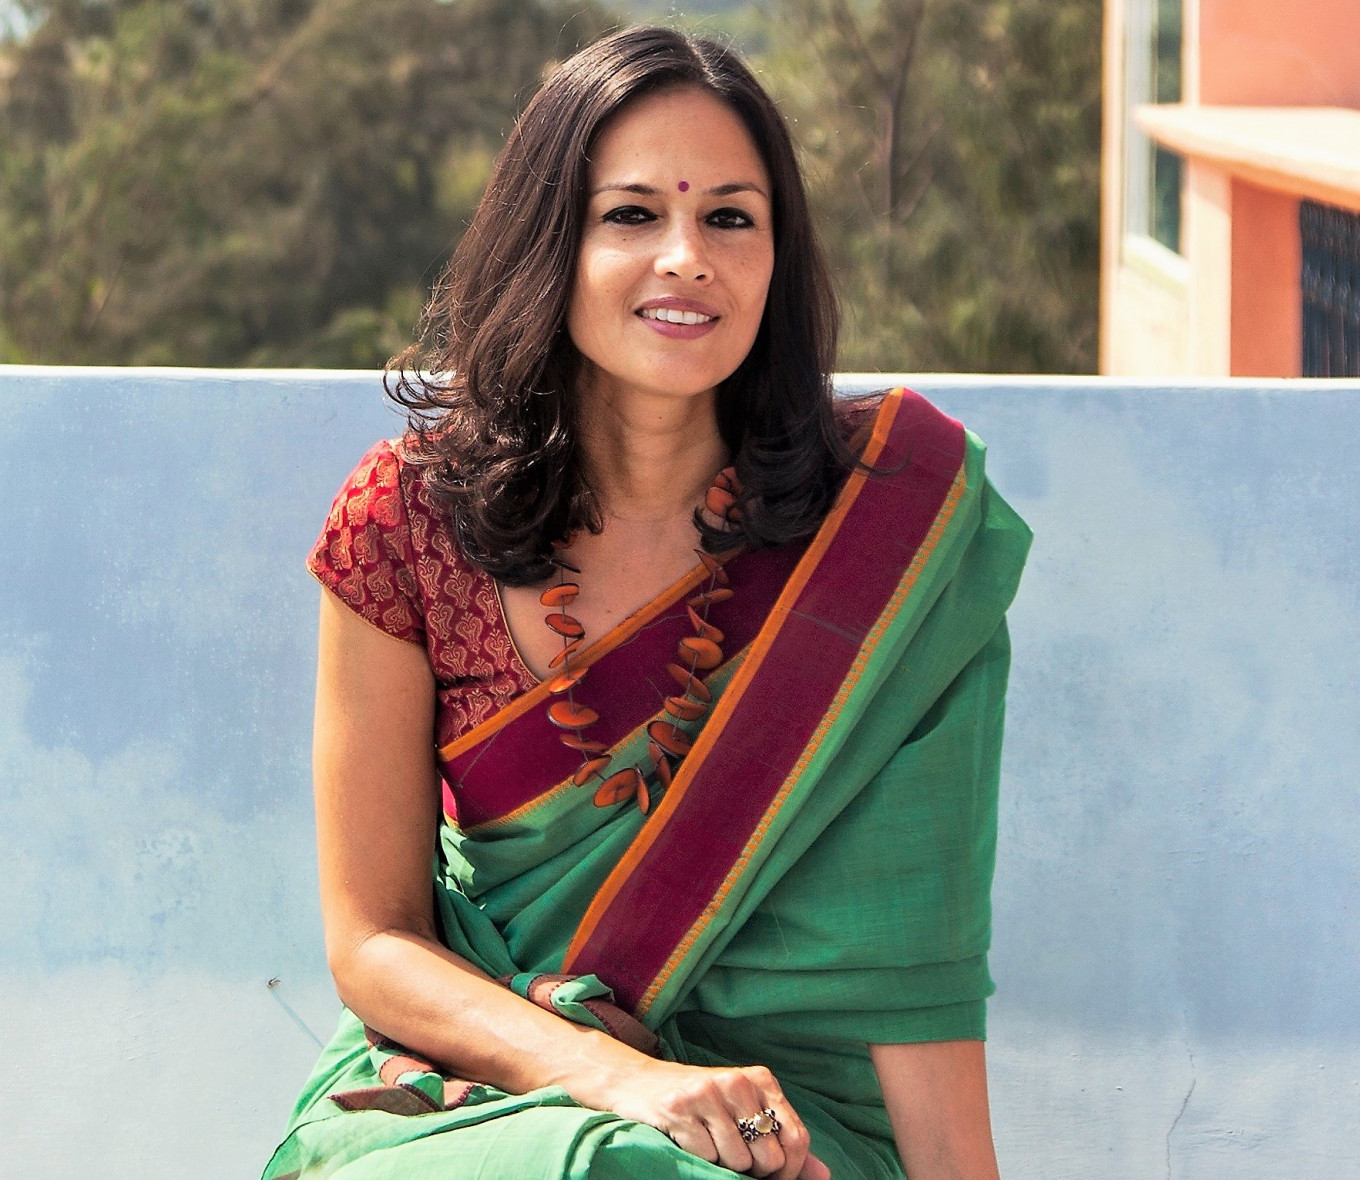 Tishani Doshi transforms grief into expression of life